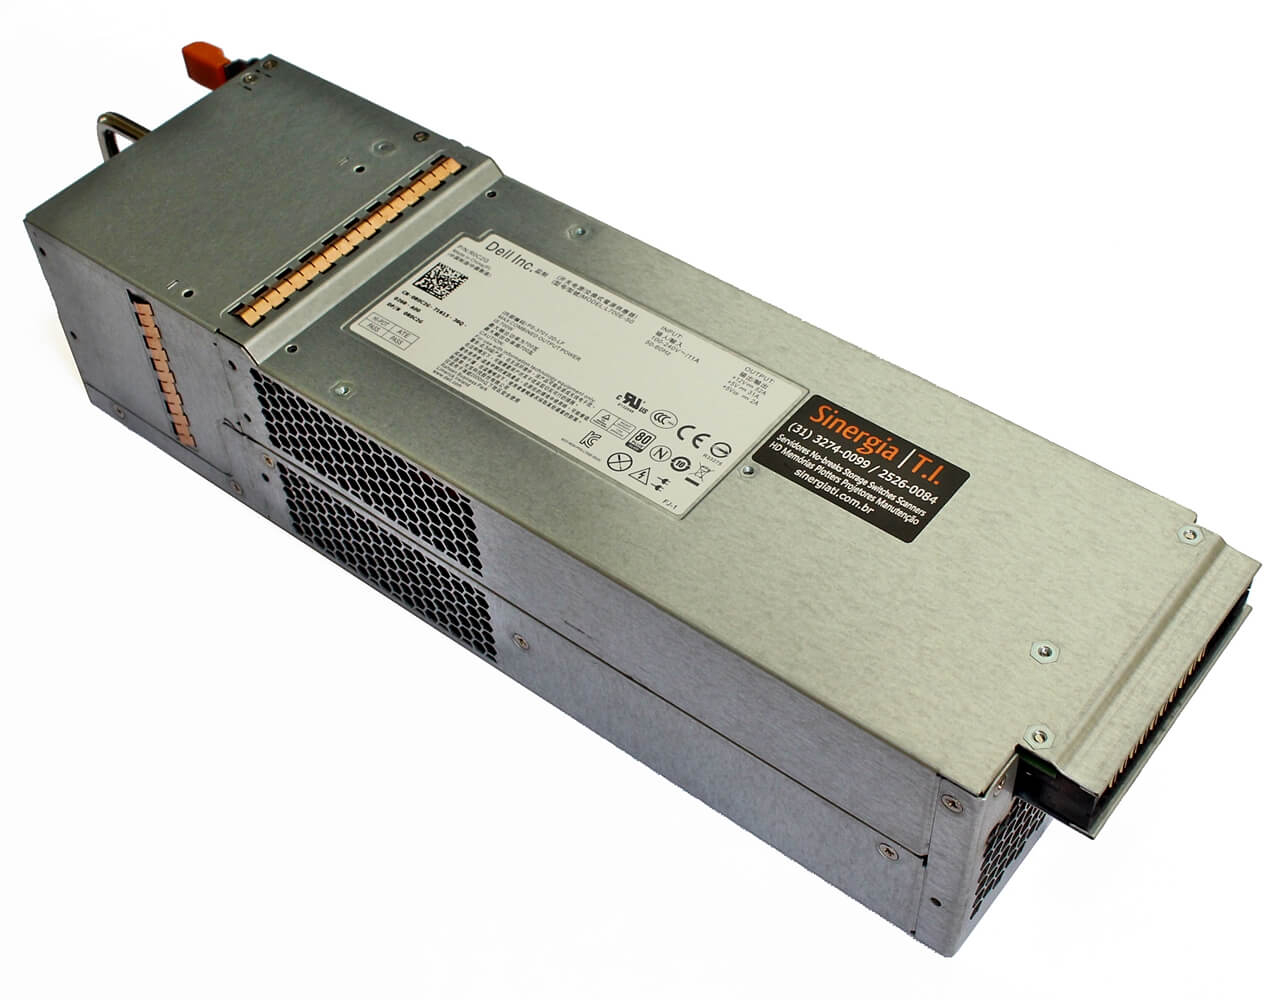 DP/N 0R0C2G Fonte para Storage Dell EqualLogic PS6110 e PS6110X 700W